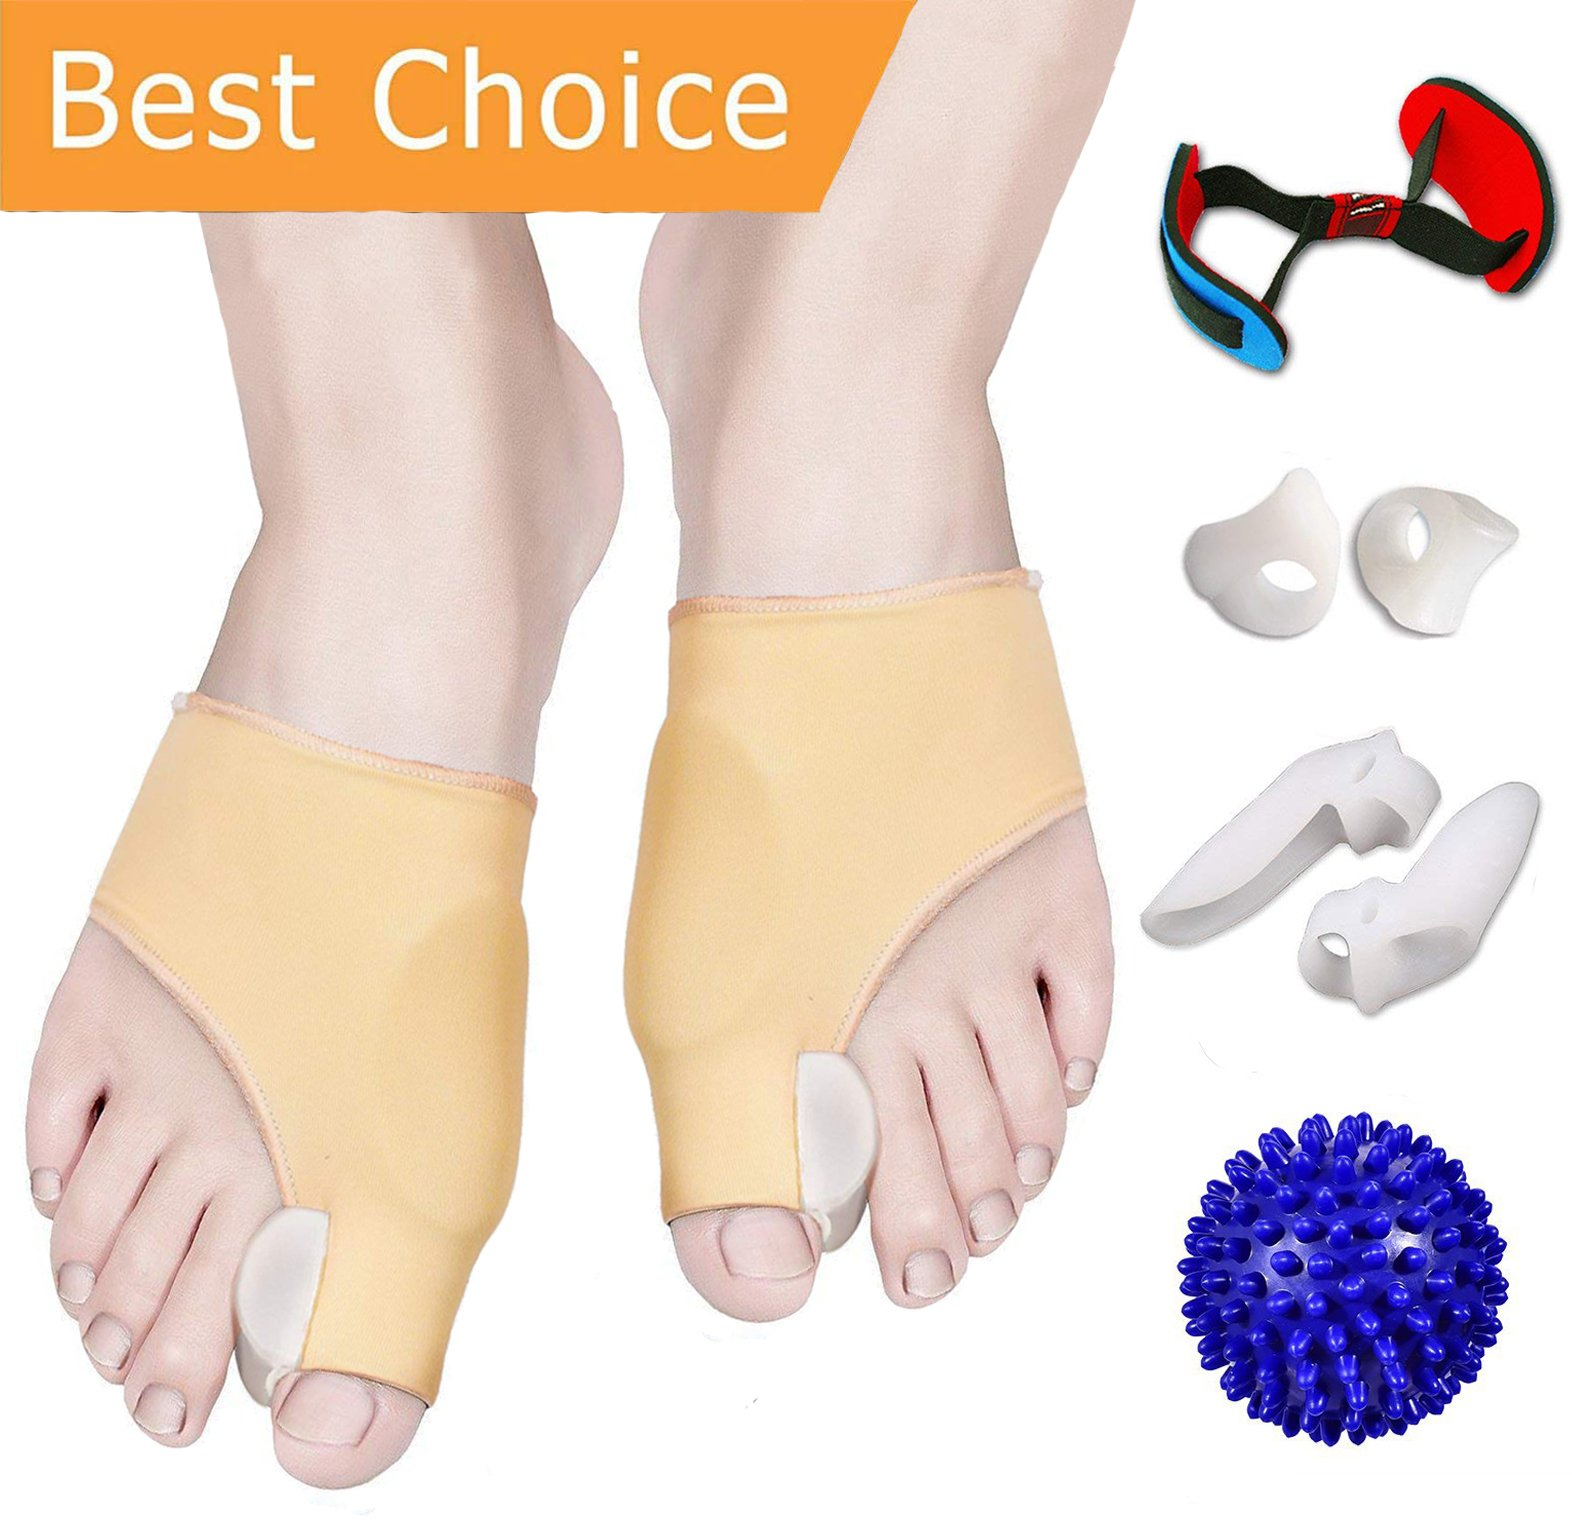 Bunion Corrector and Bunion Relief, Bunion Splint Pads for Hallux Valgus, Big Toe Joint, Hammer Toe, Toe Separators Spacers Straighteners with Foot Massage Ball